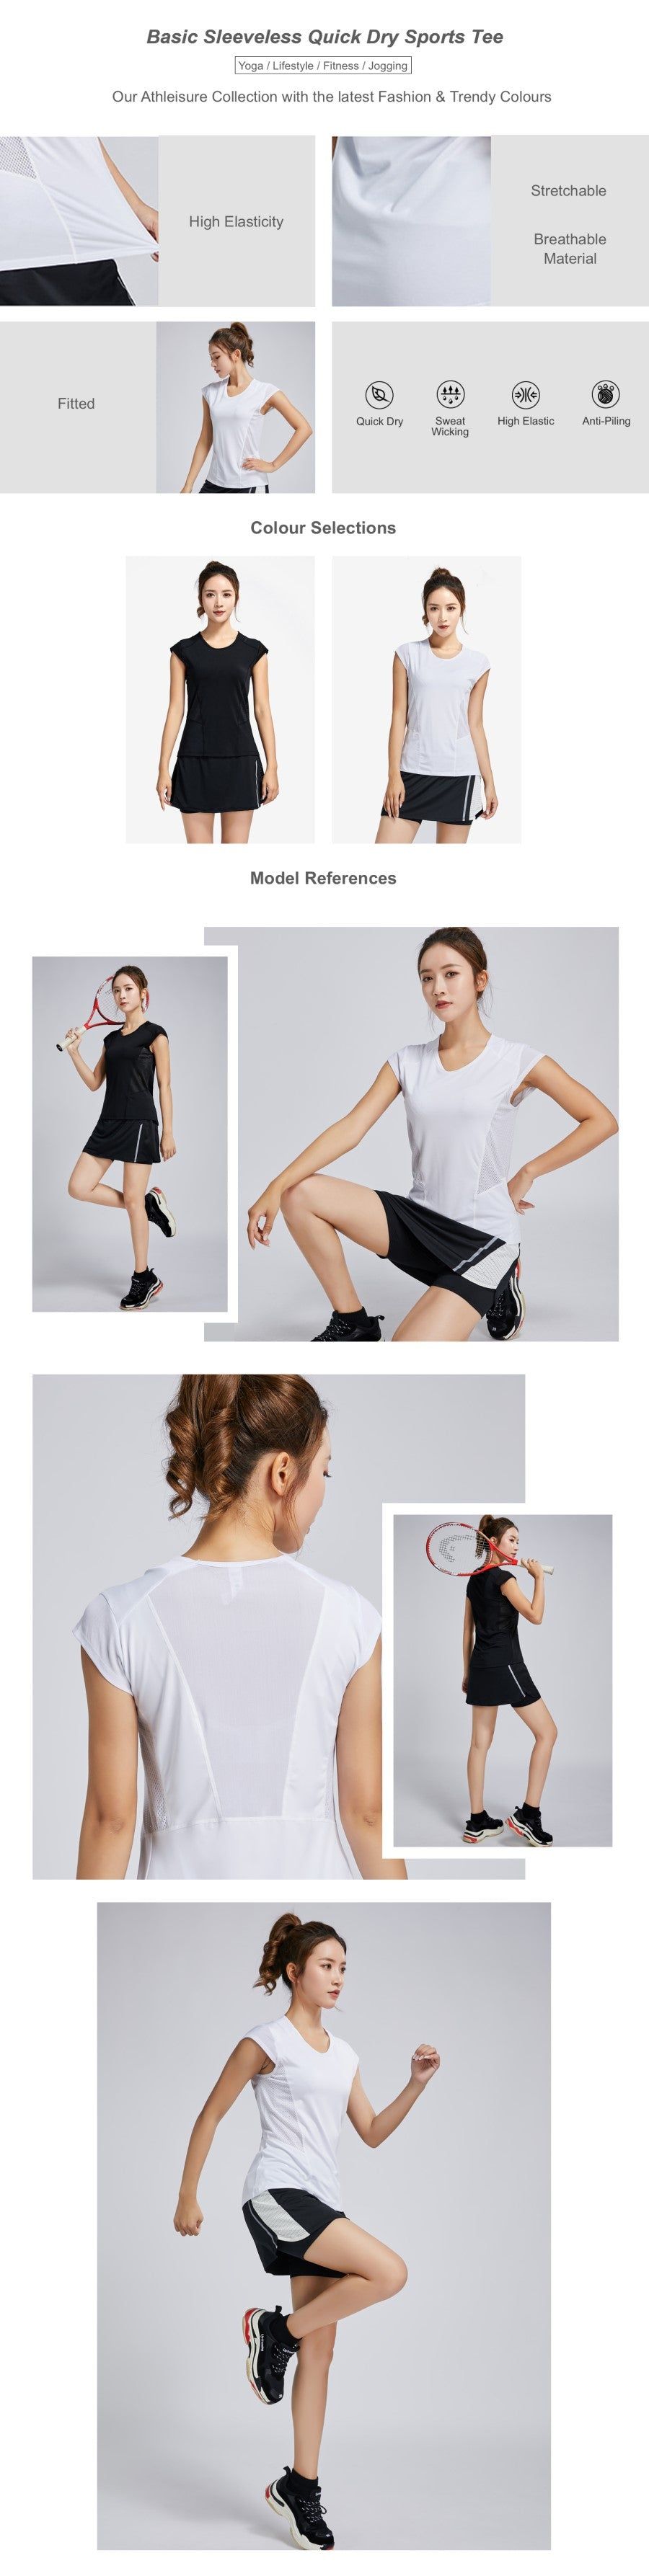 Basic Sleeveless Quick Dry Sports Tee